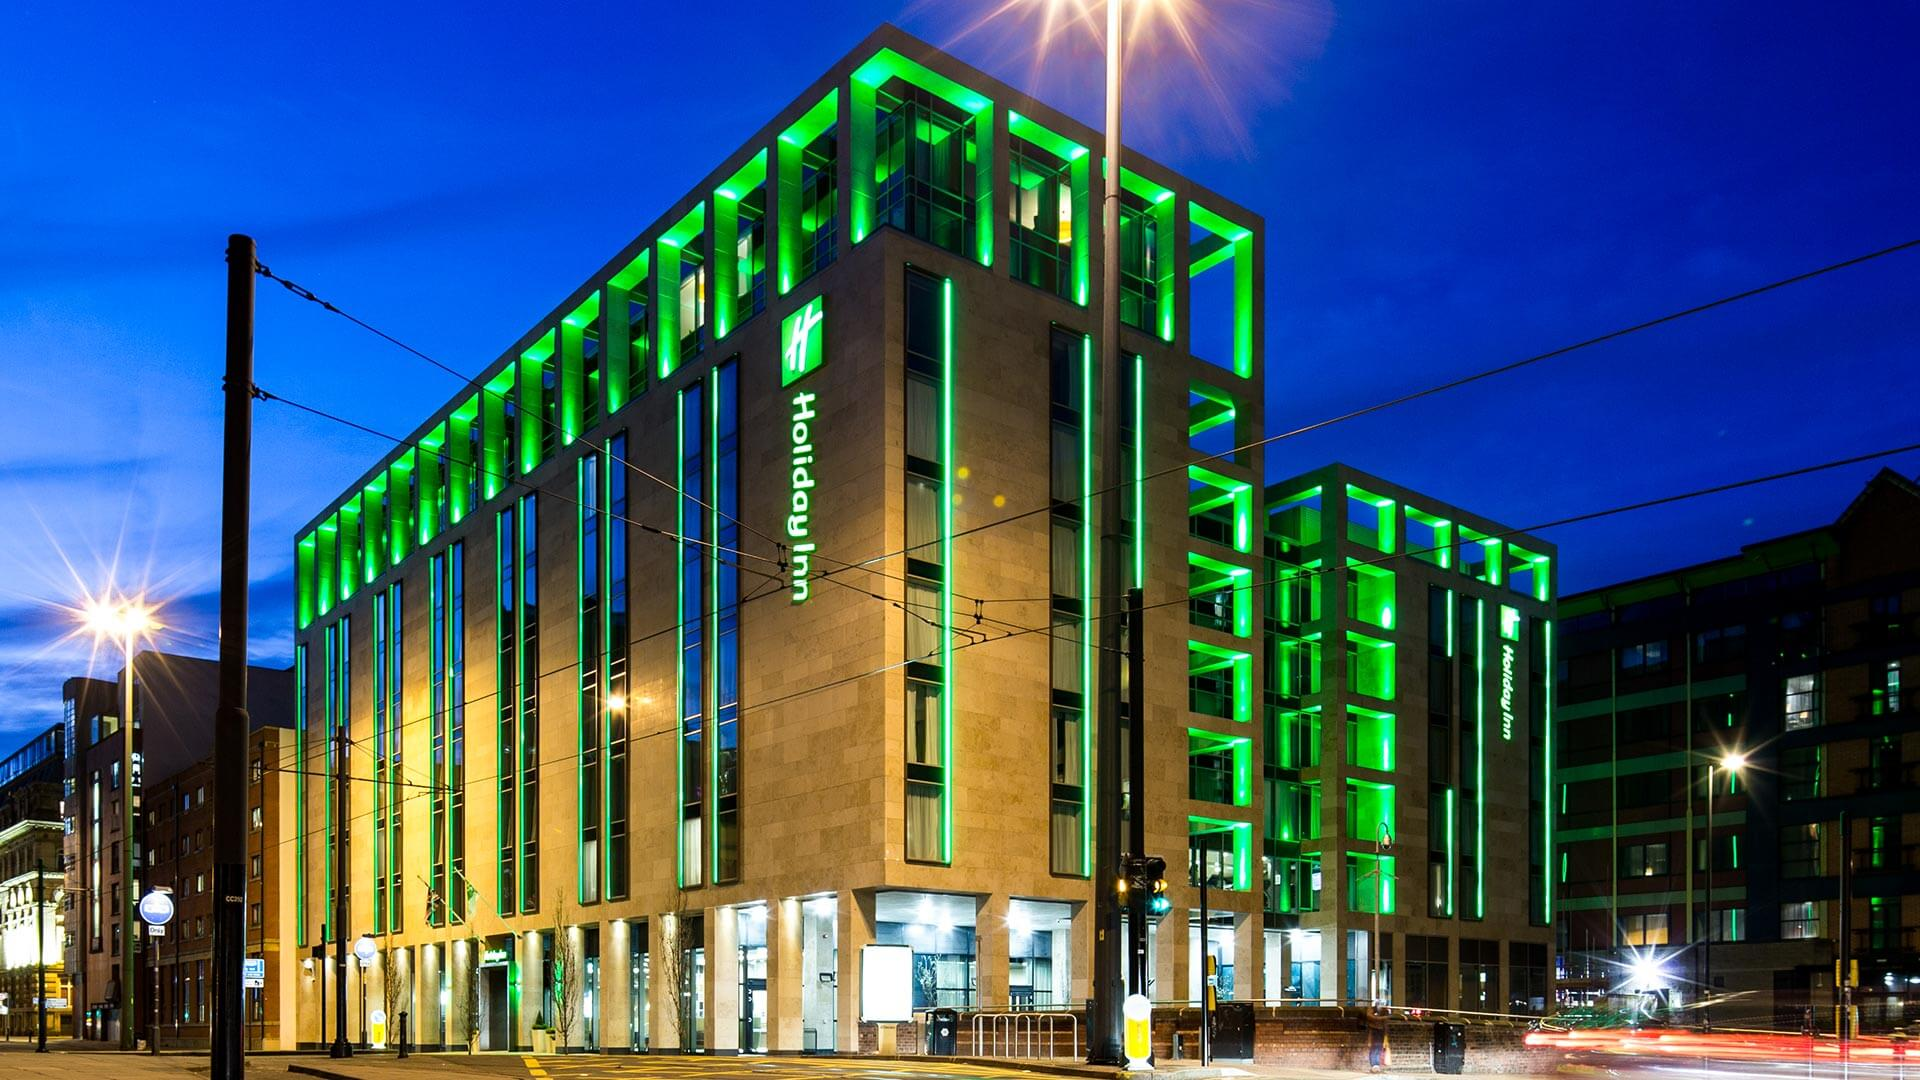 A night time shot of the exterior of the hotel. It is lit up in green lights.